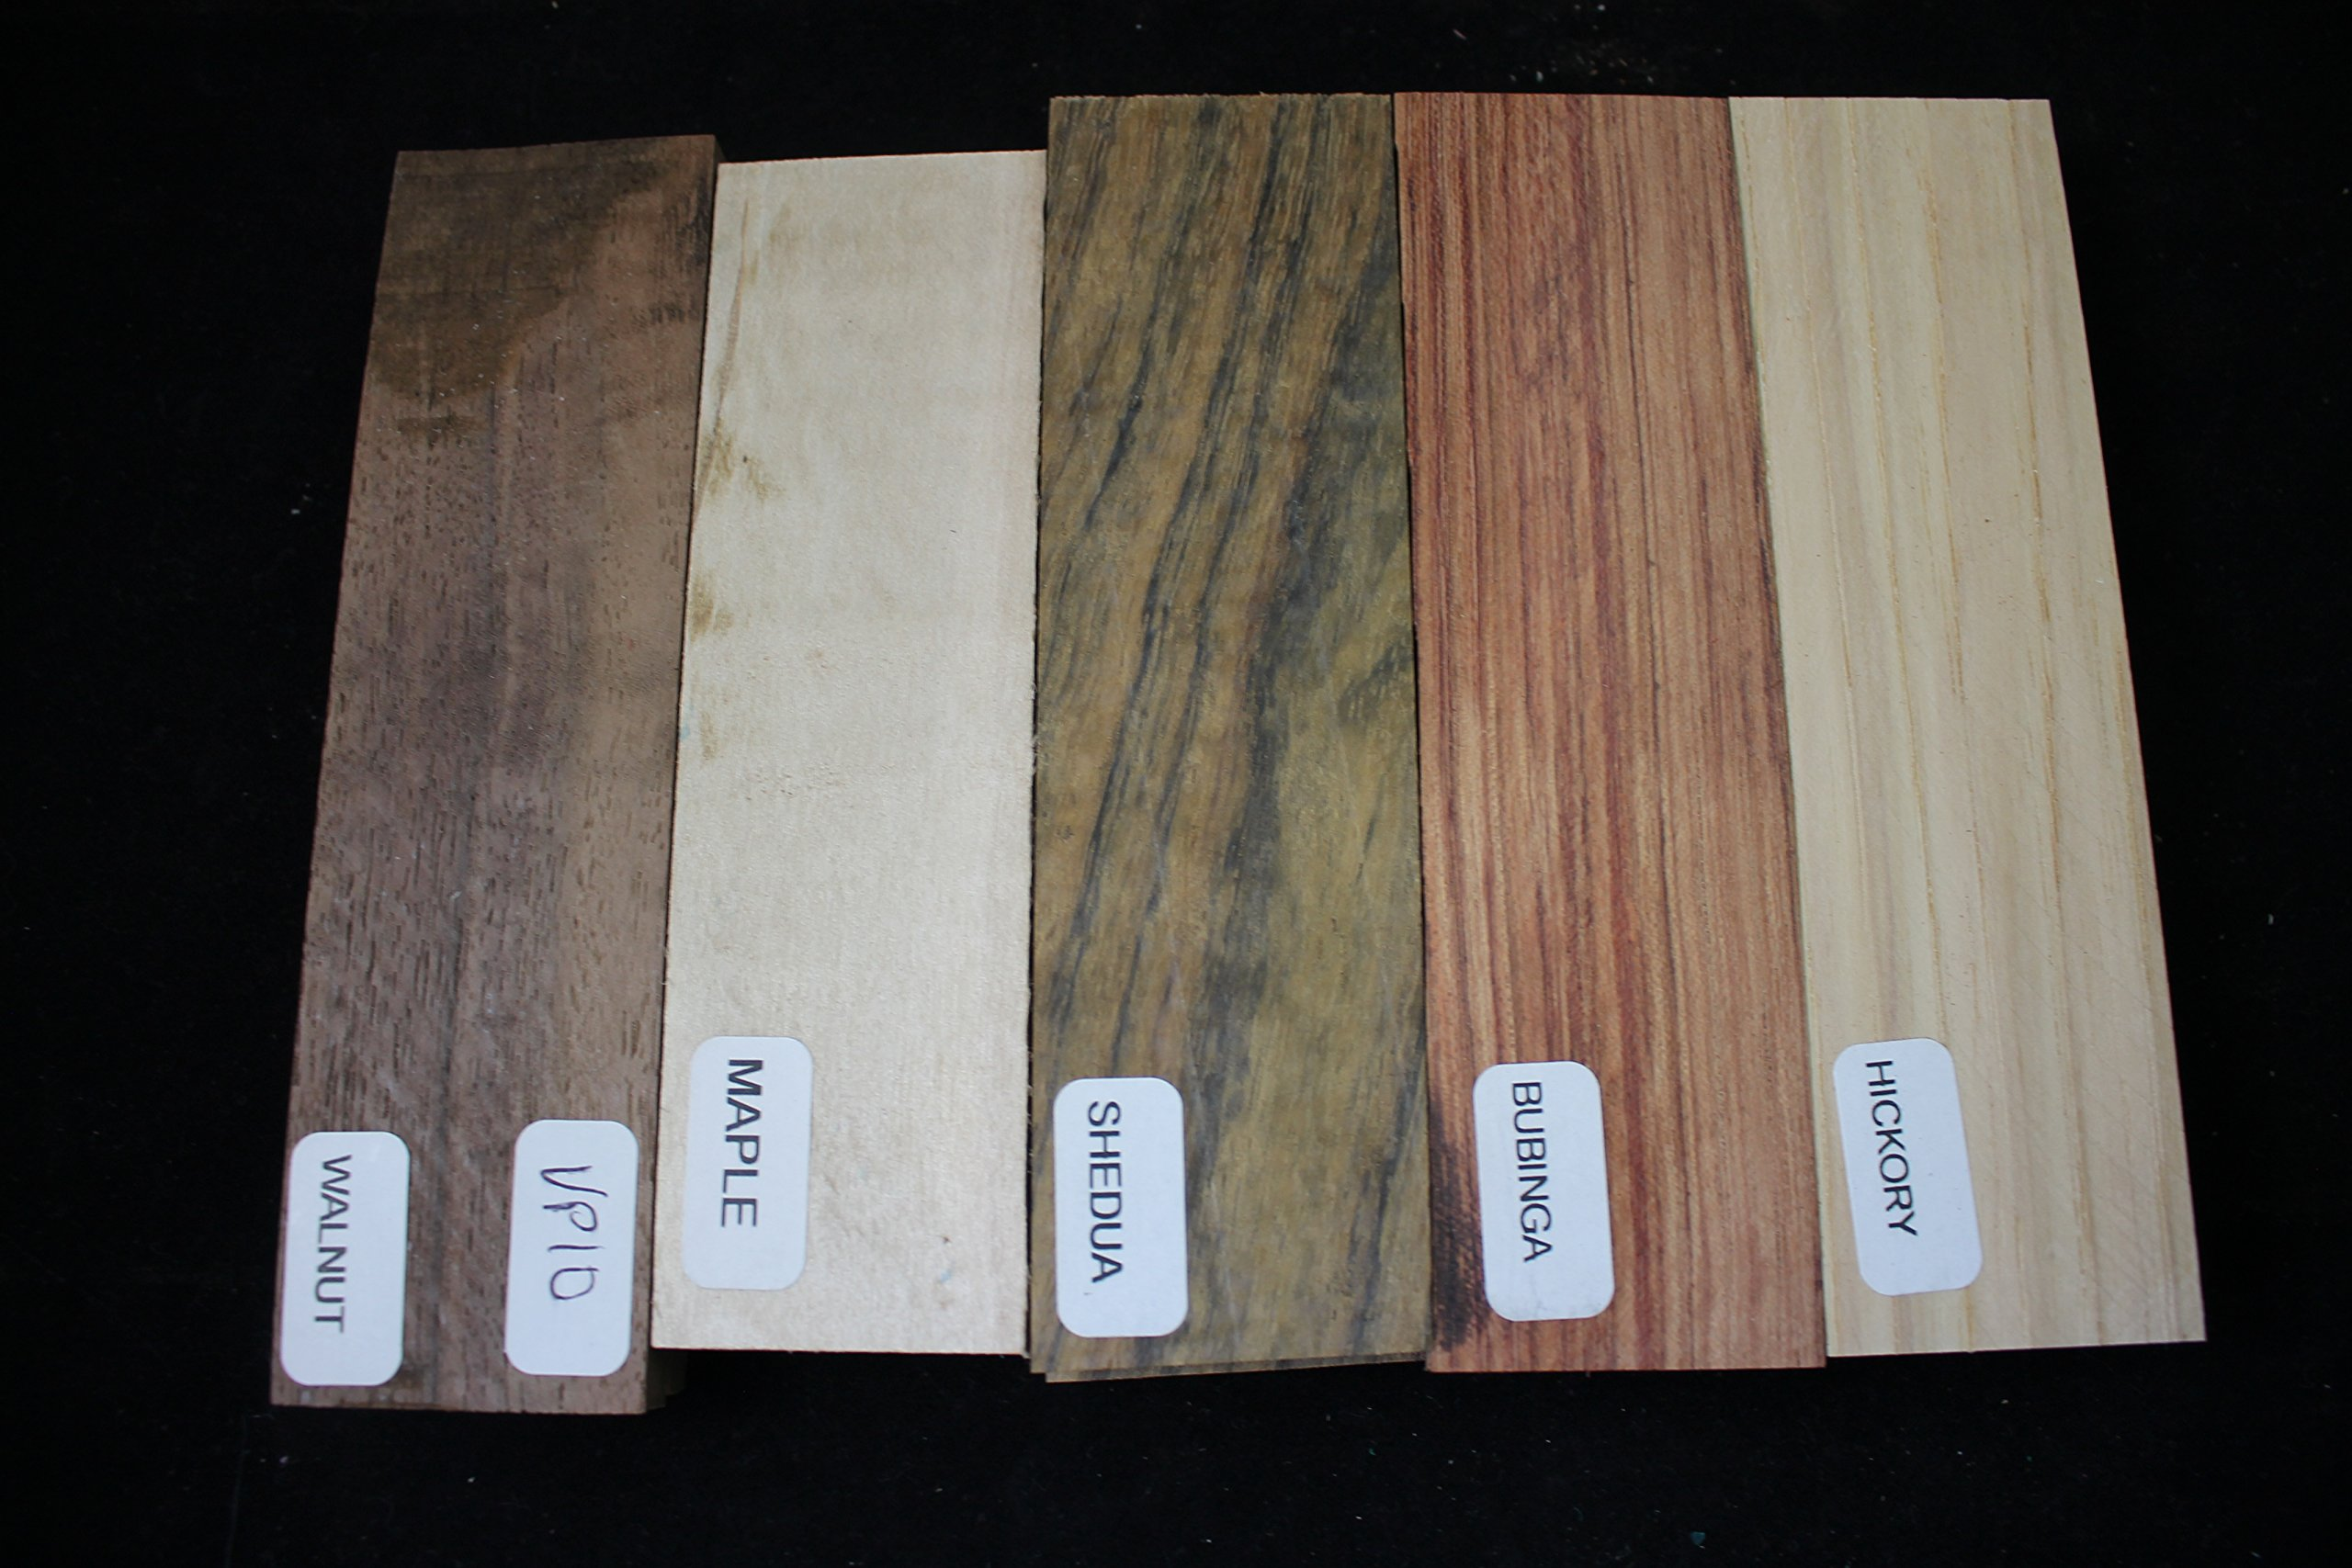 Variety Pack of 5 Wood Scales, Wood for Knife Making - Knife Handle Material - Knife Making Supplies - Payne Bros - Knives of Payne - Wood Handle Material - Untreated Wood - (JLM) (SFVP10)